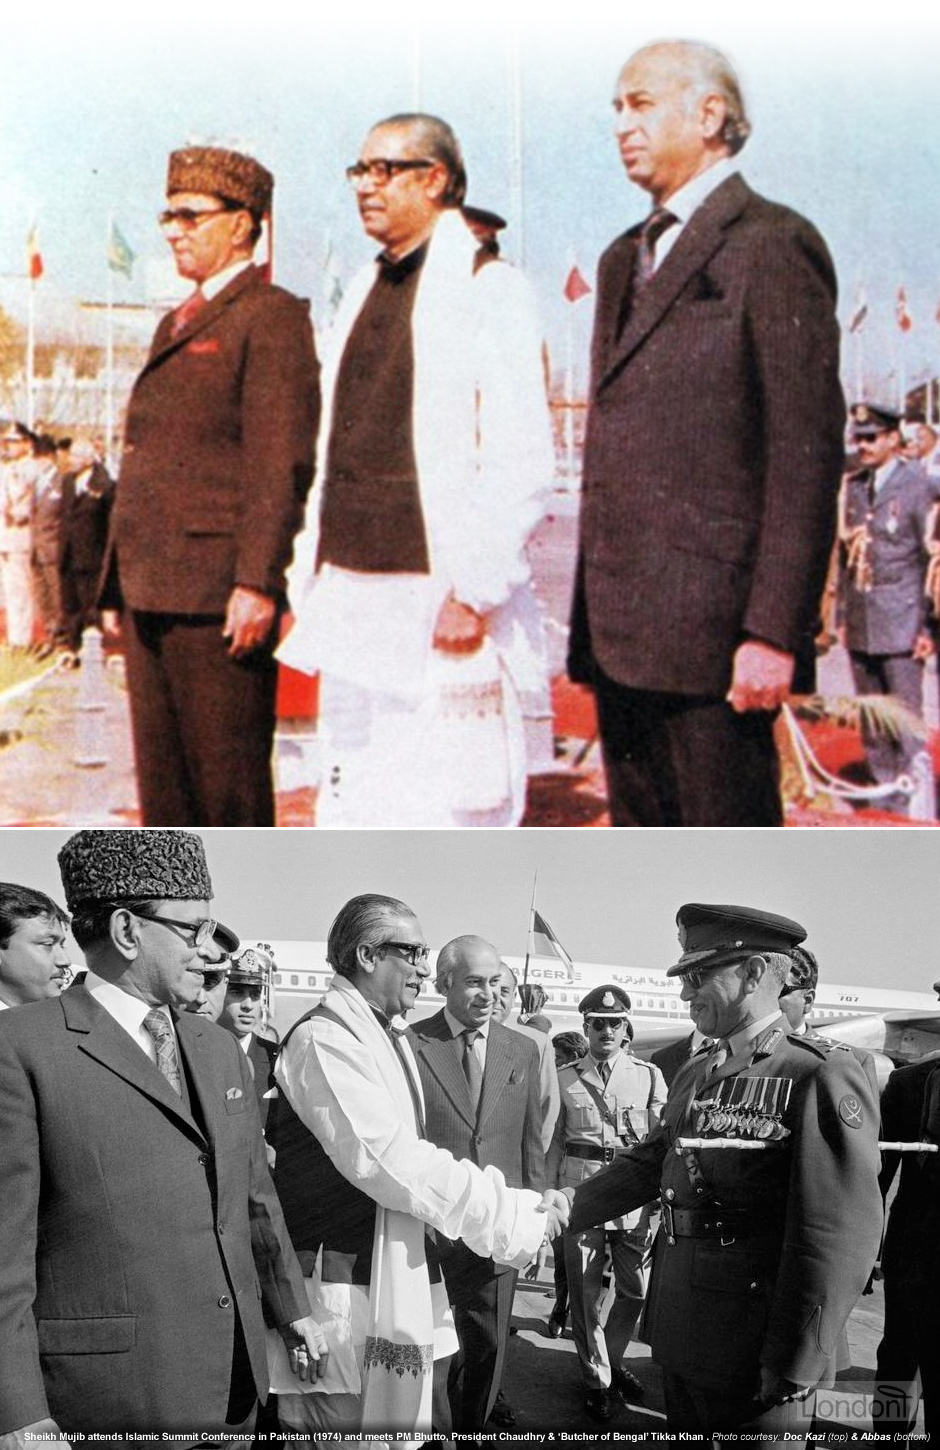 Sheikh Mujibur Rahman with Zulfikar Ali Bhutto in a state visit to Pakistan in 1974